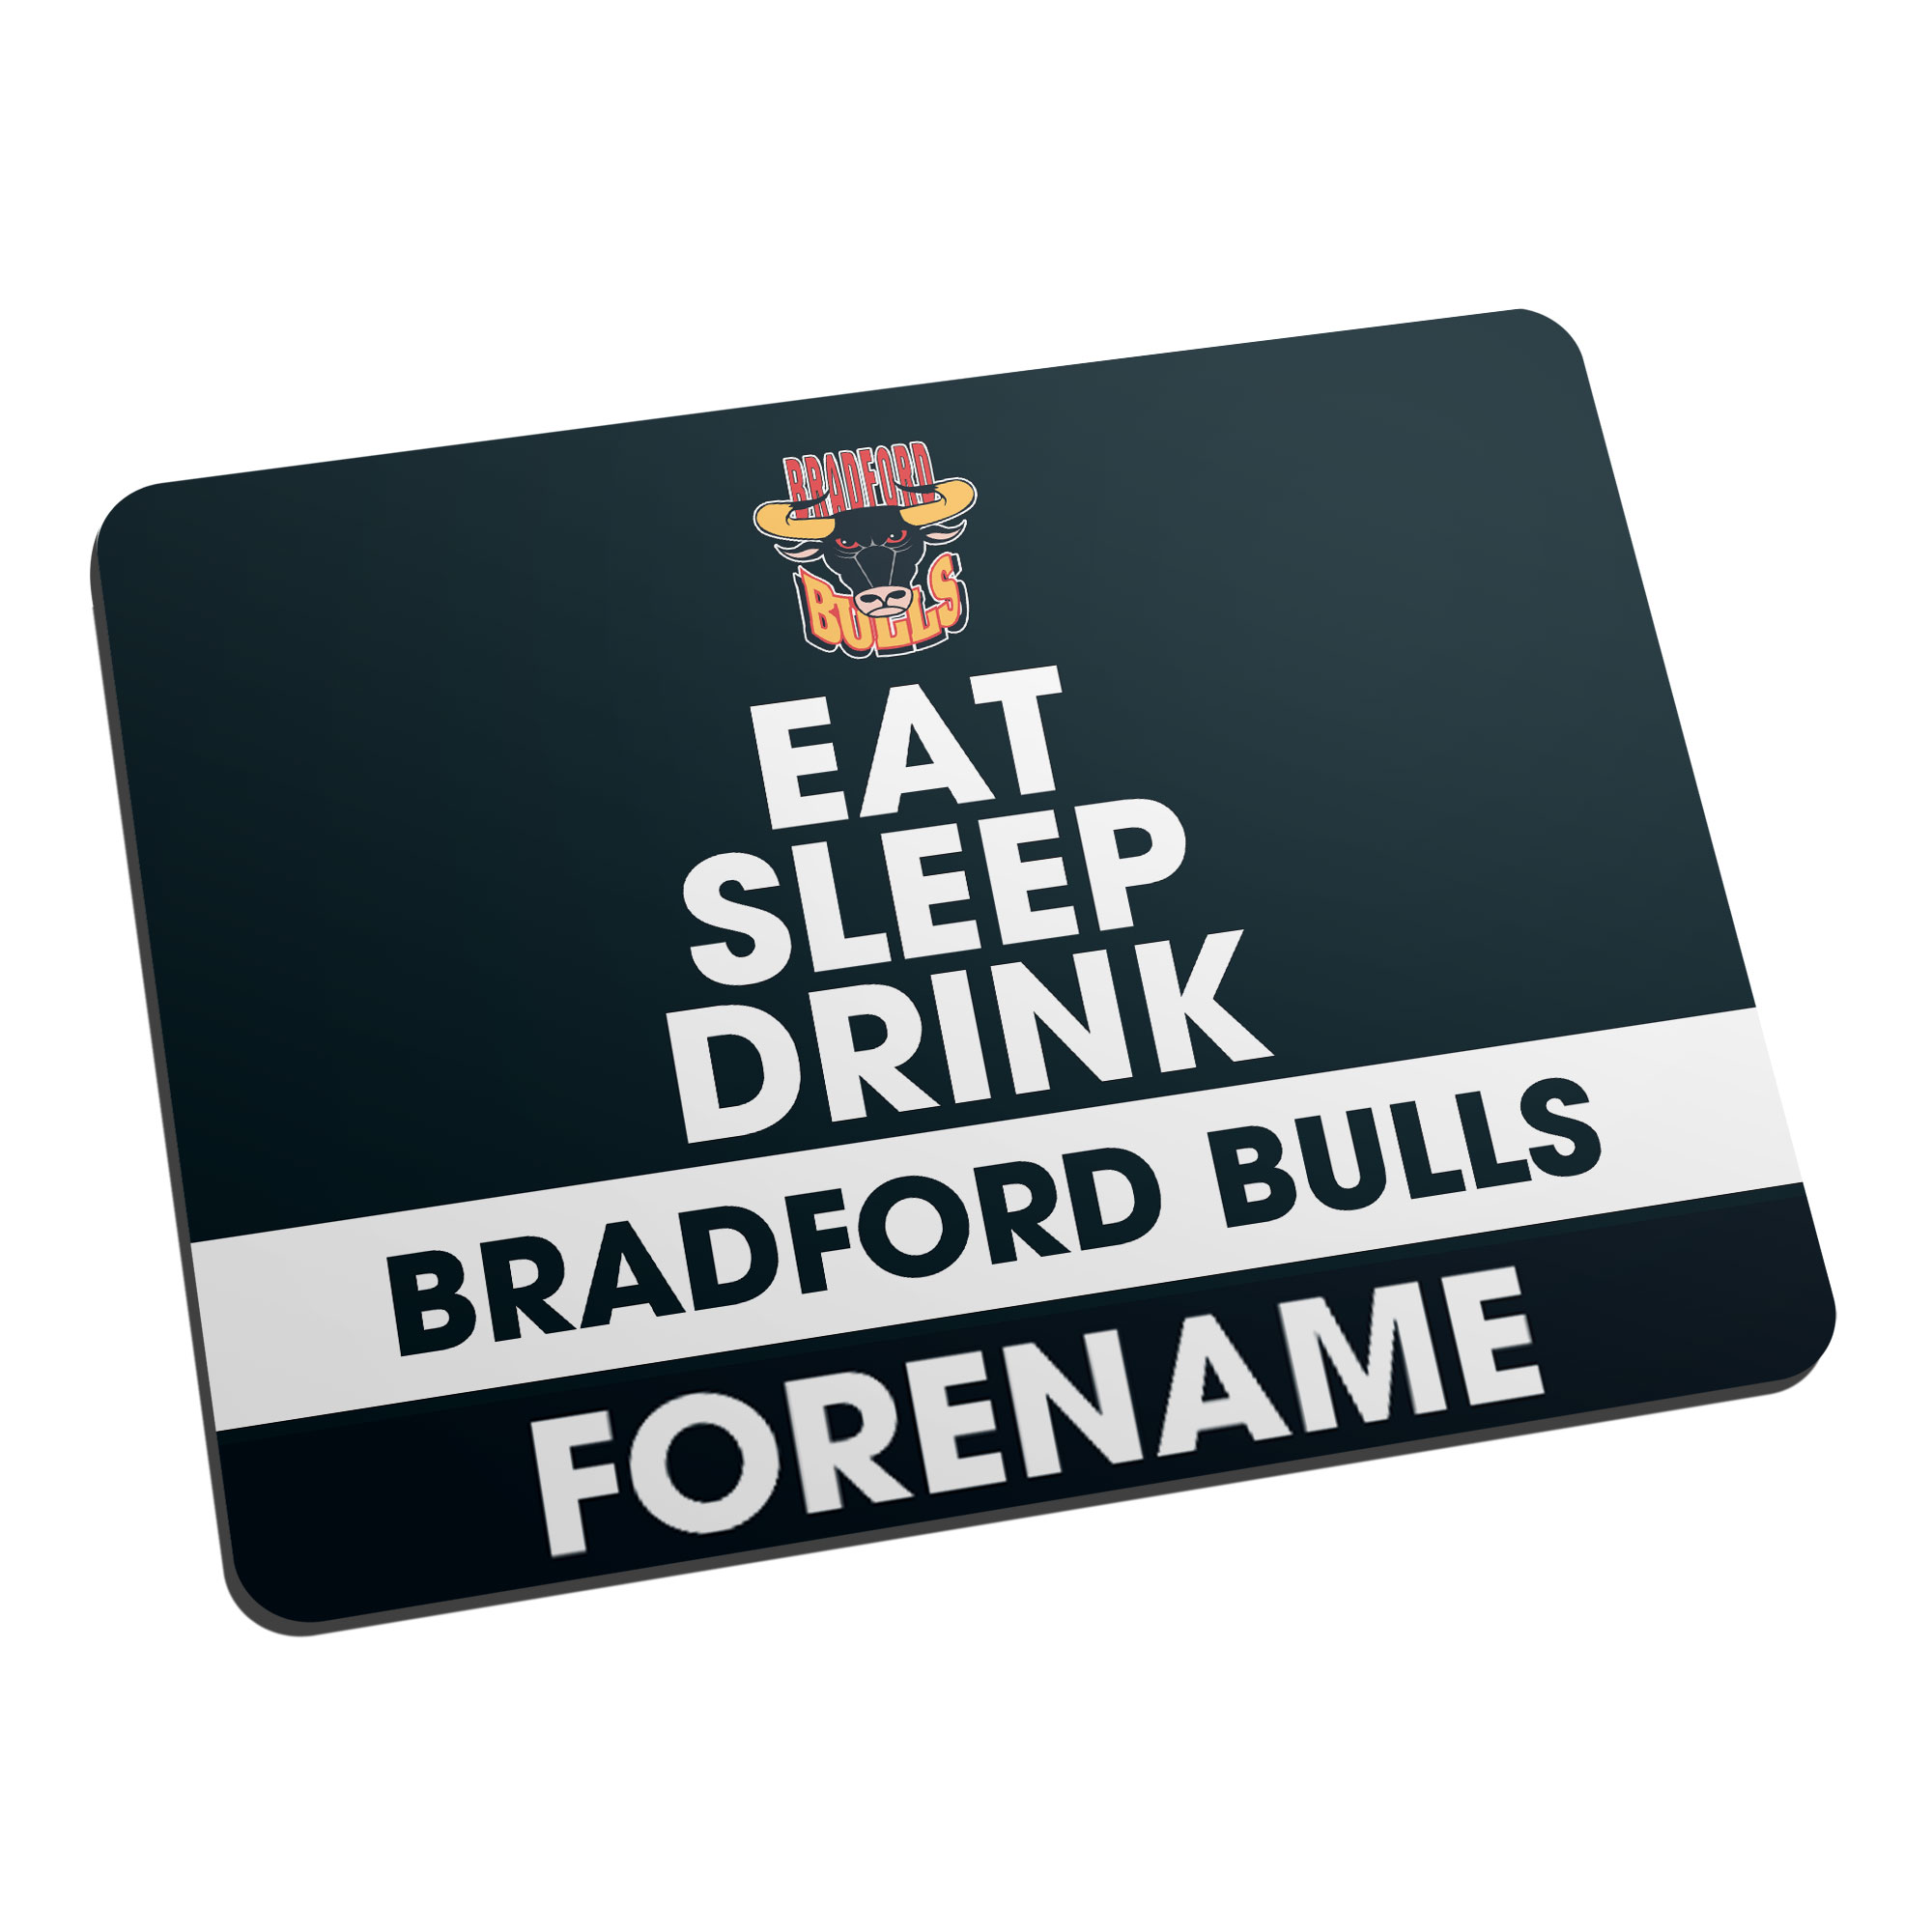 Bradford Bulls Eat Sleep Drink Mouse Mat